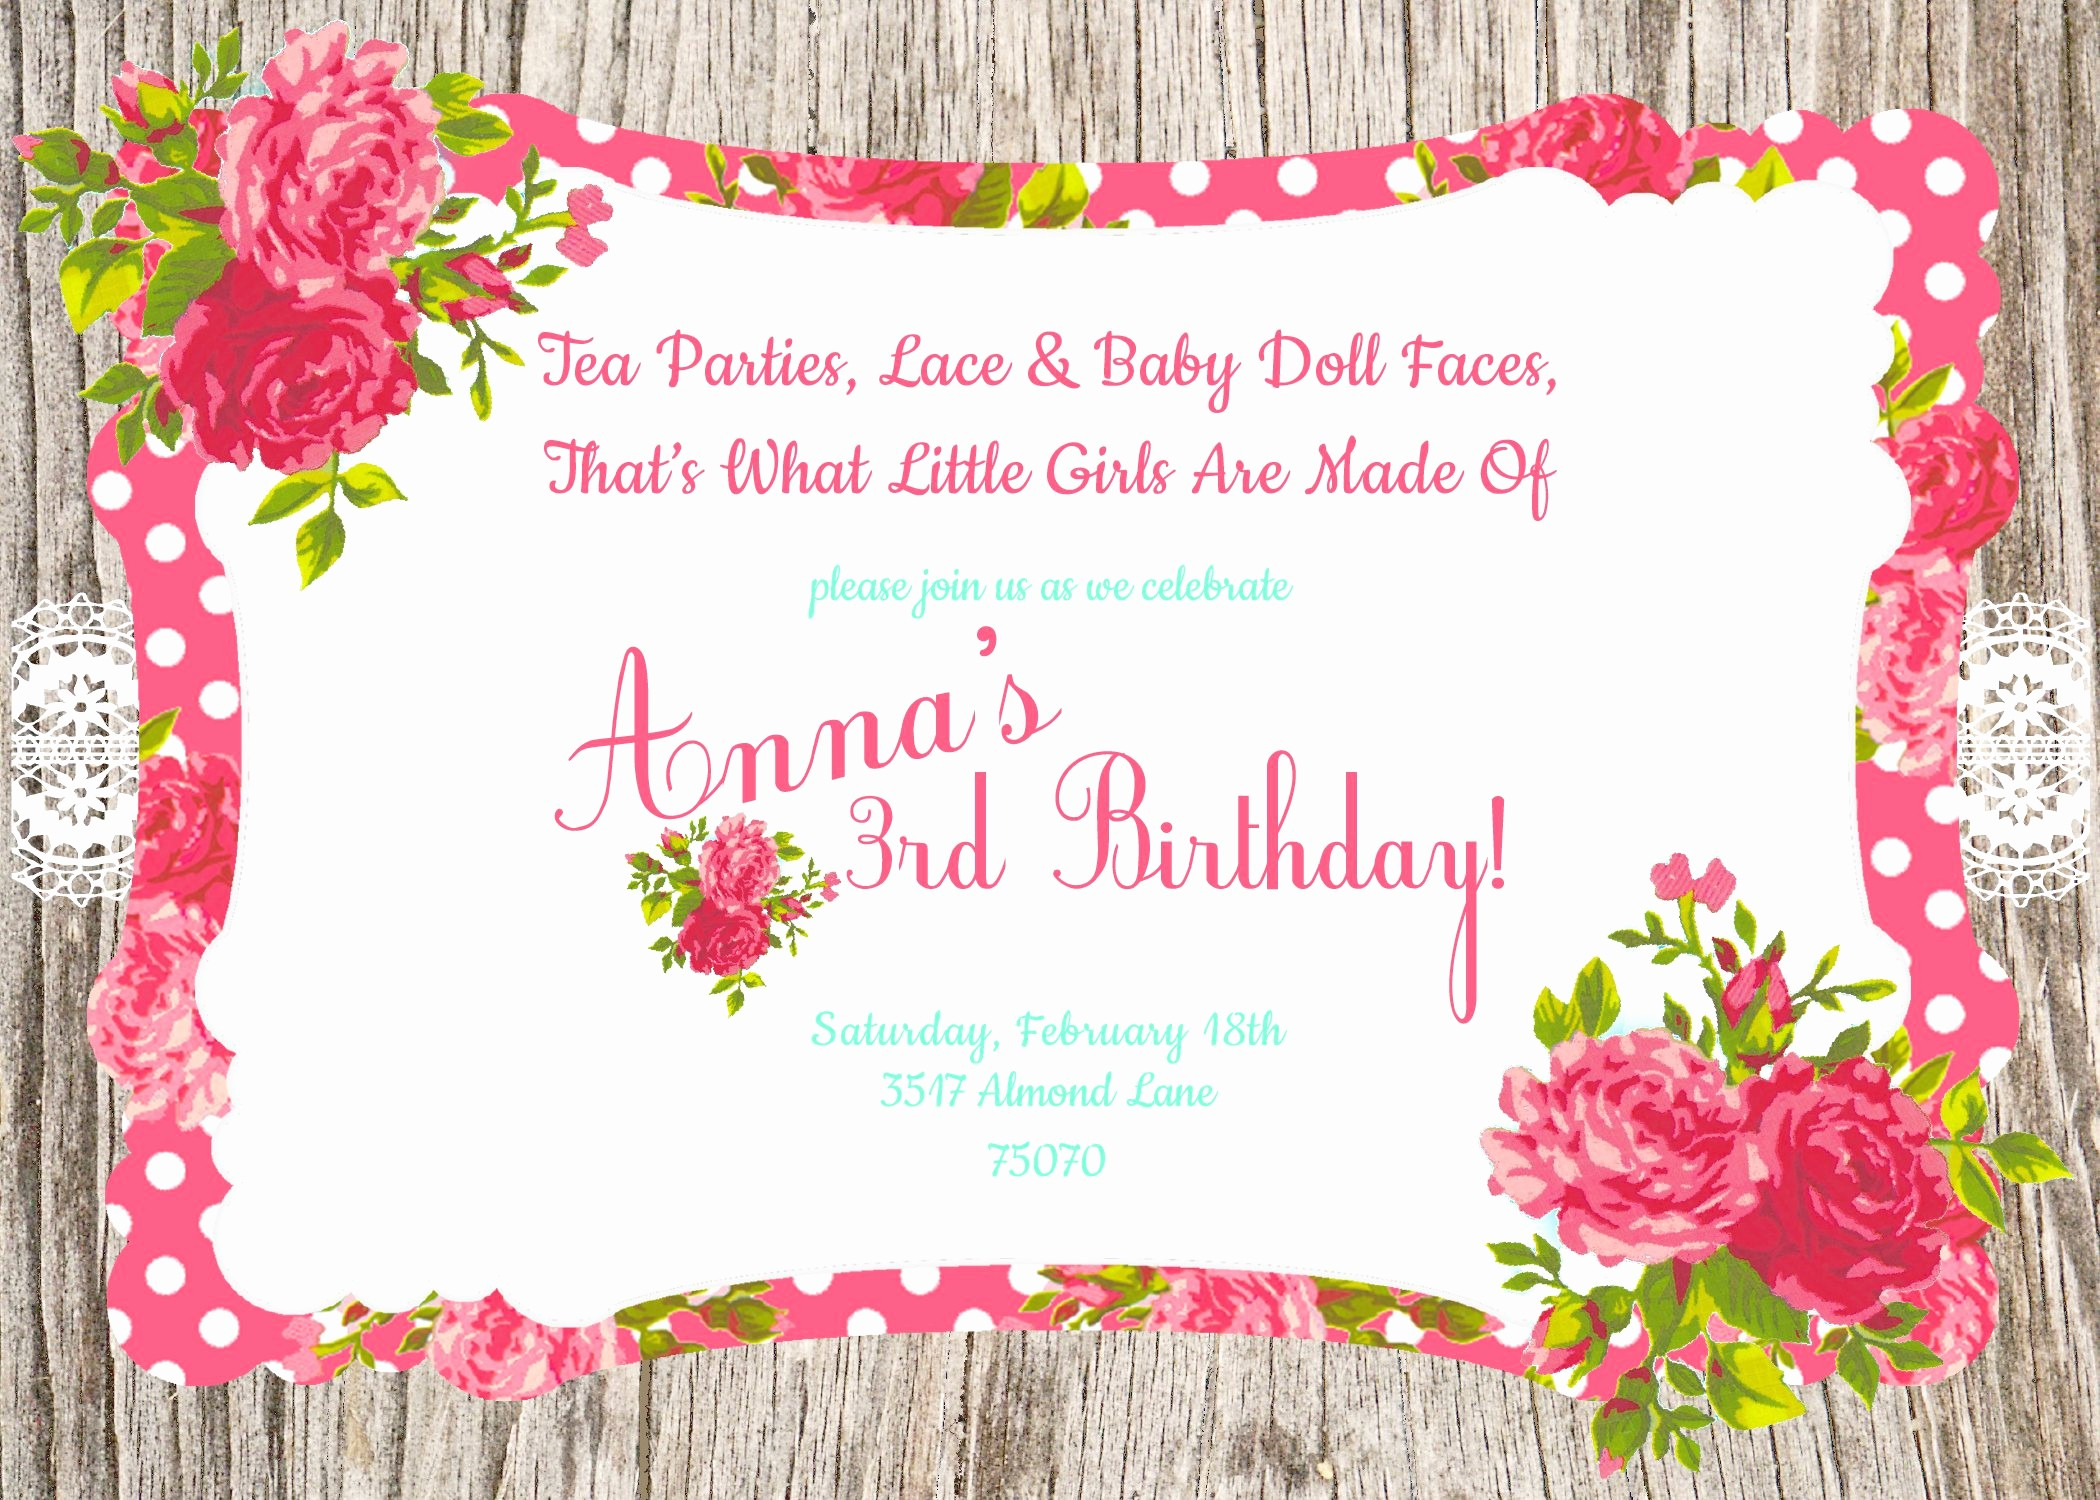 Birthday Party Invitation Card Template Fresh Invitation Birthday Card Invitation Birthday Card